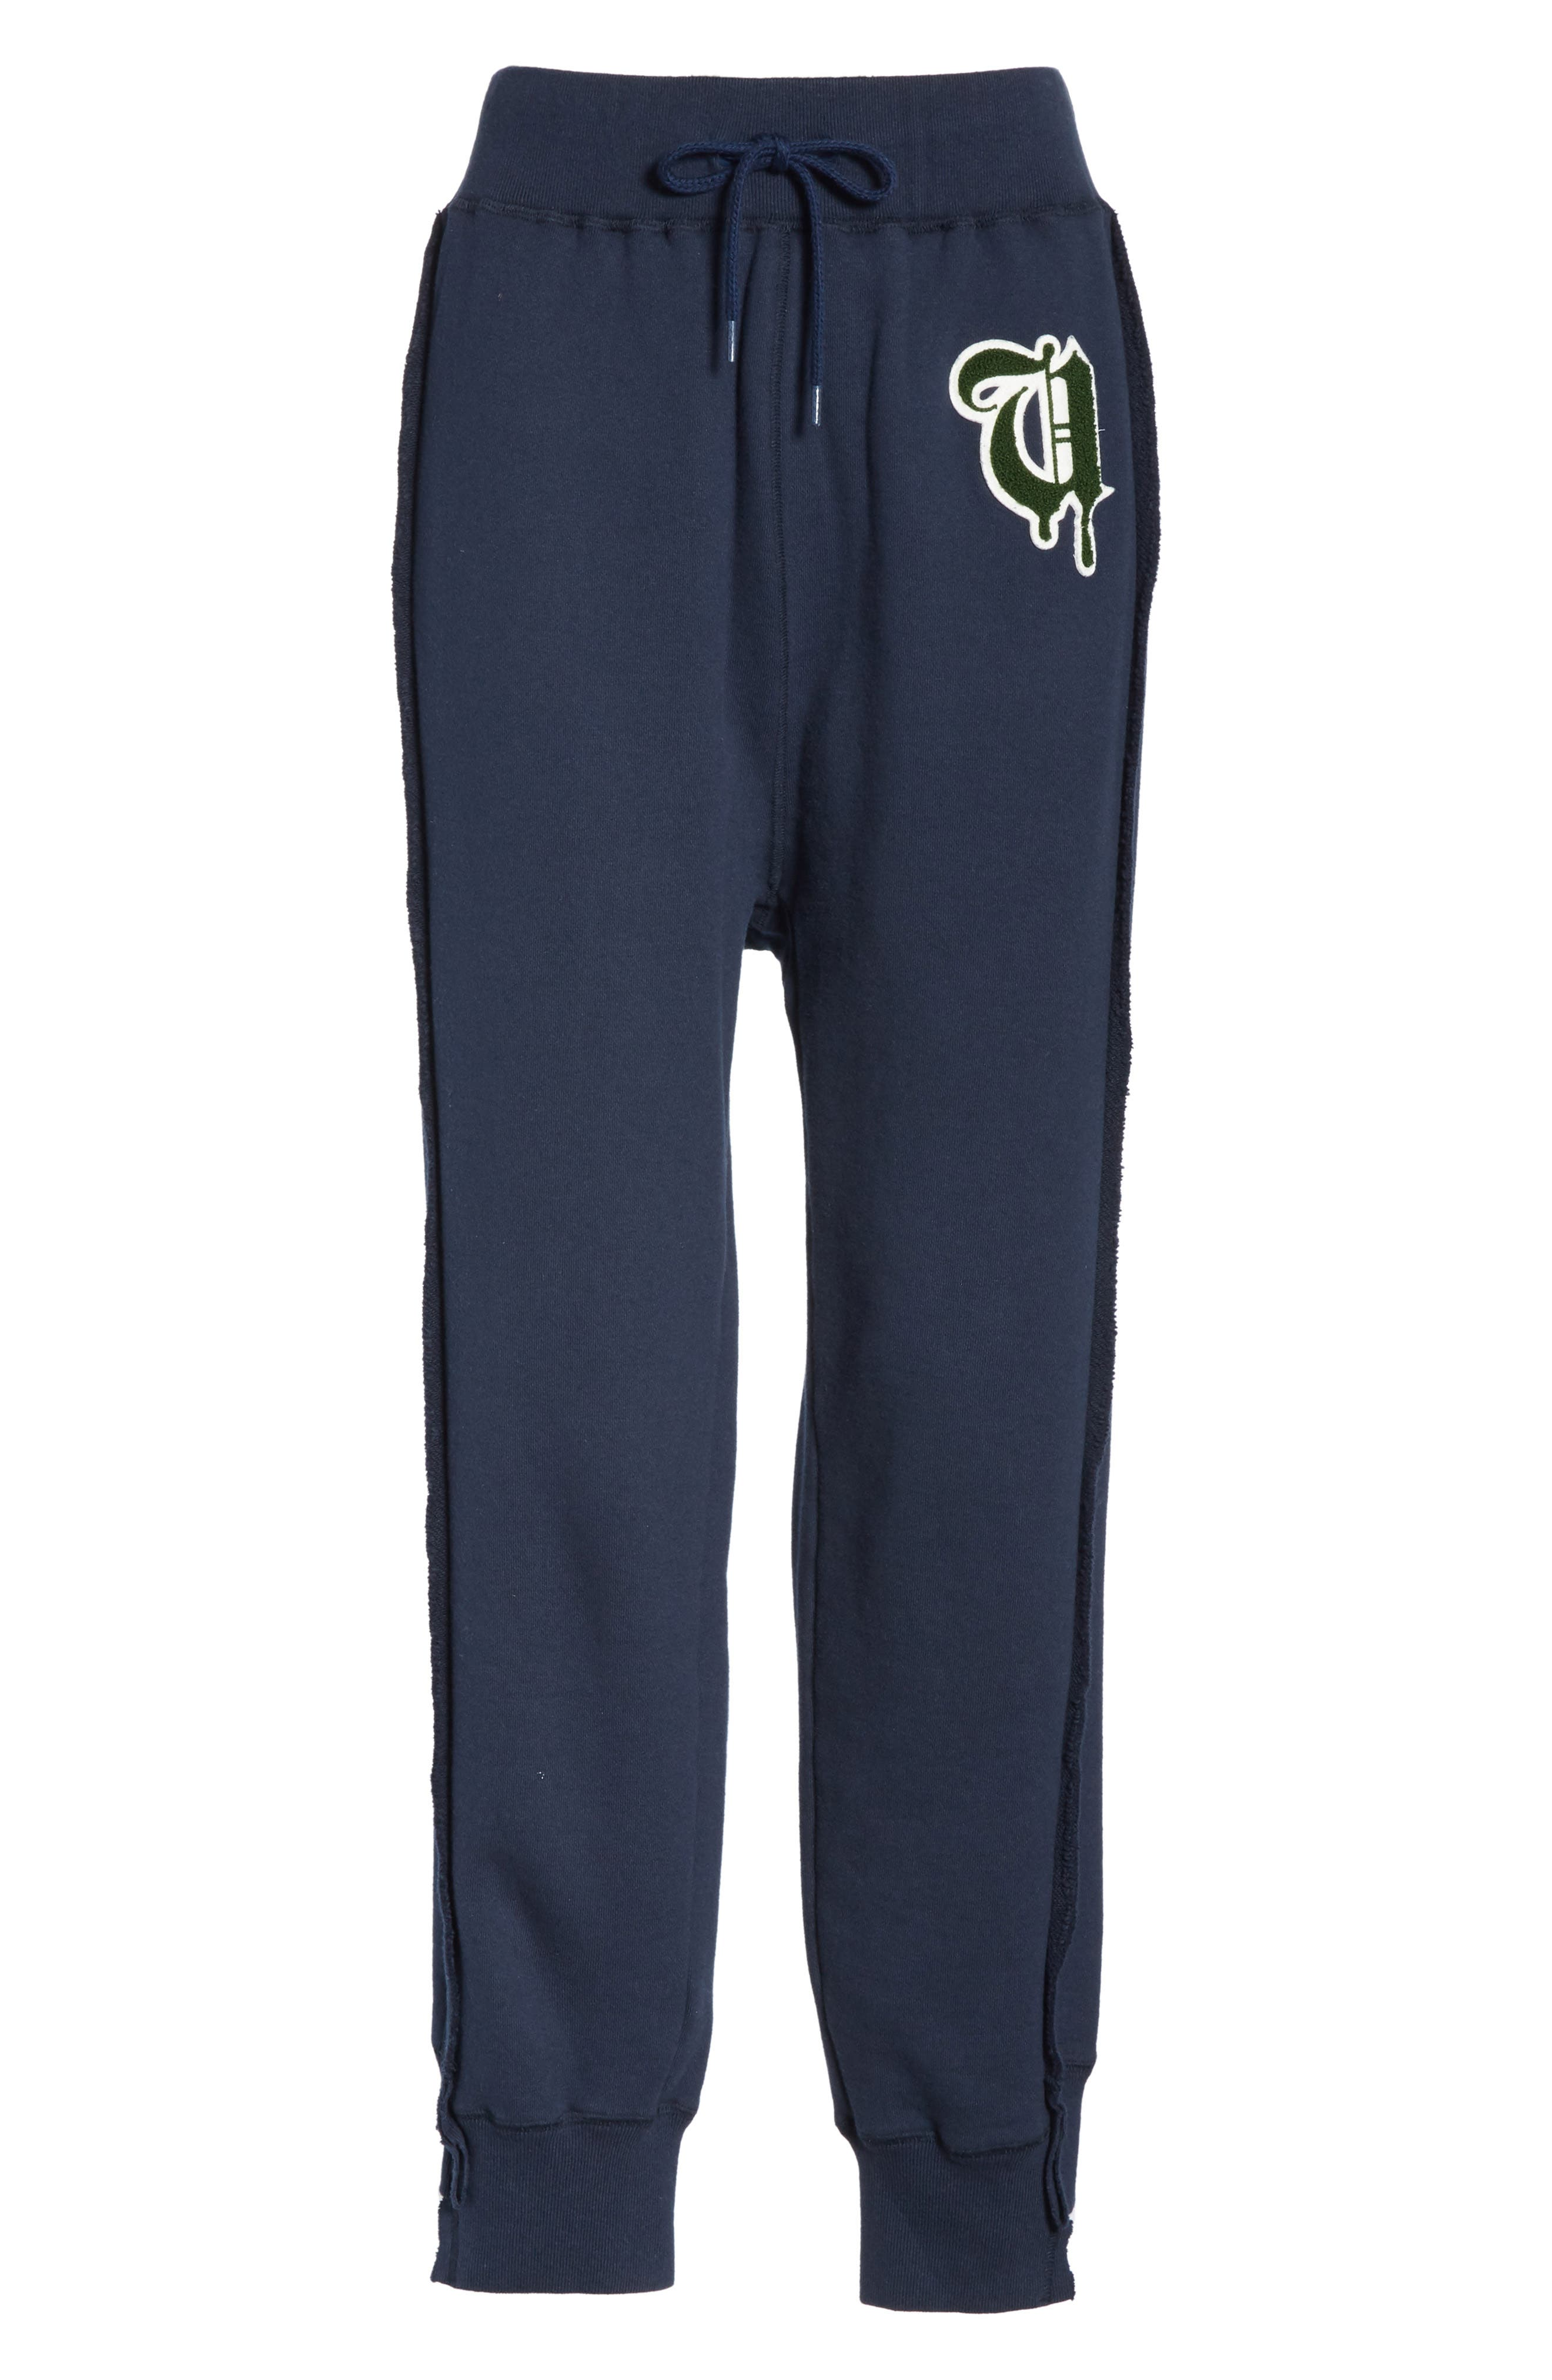 Logo Sweatpants,                             Alternate thumbnail 6, color,                             B DARK NAVY